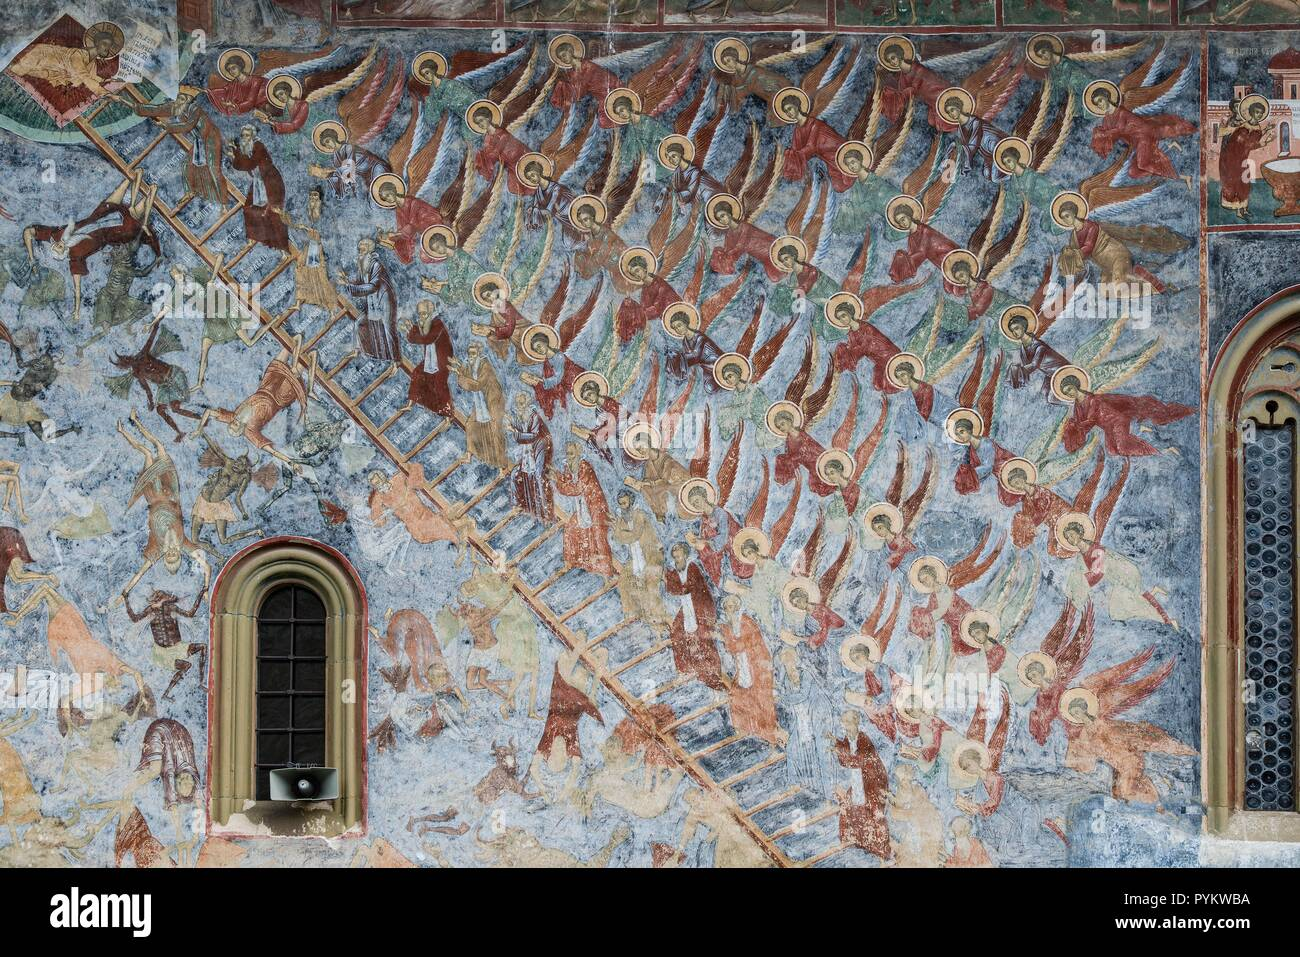 ROMANIA, SUCEVITA. Vivid illustration of the 'Stairway to Heaven' an episode from the Old Testament. - Stock Image